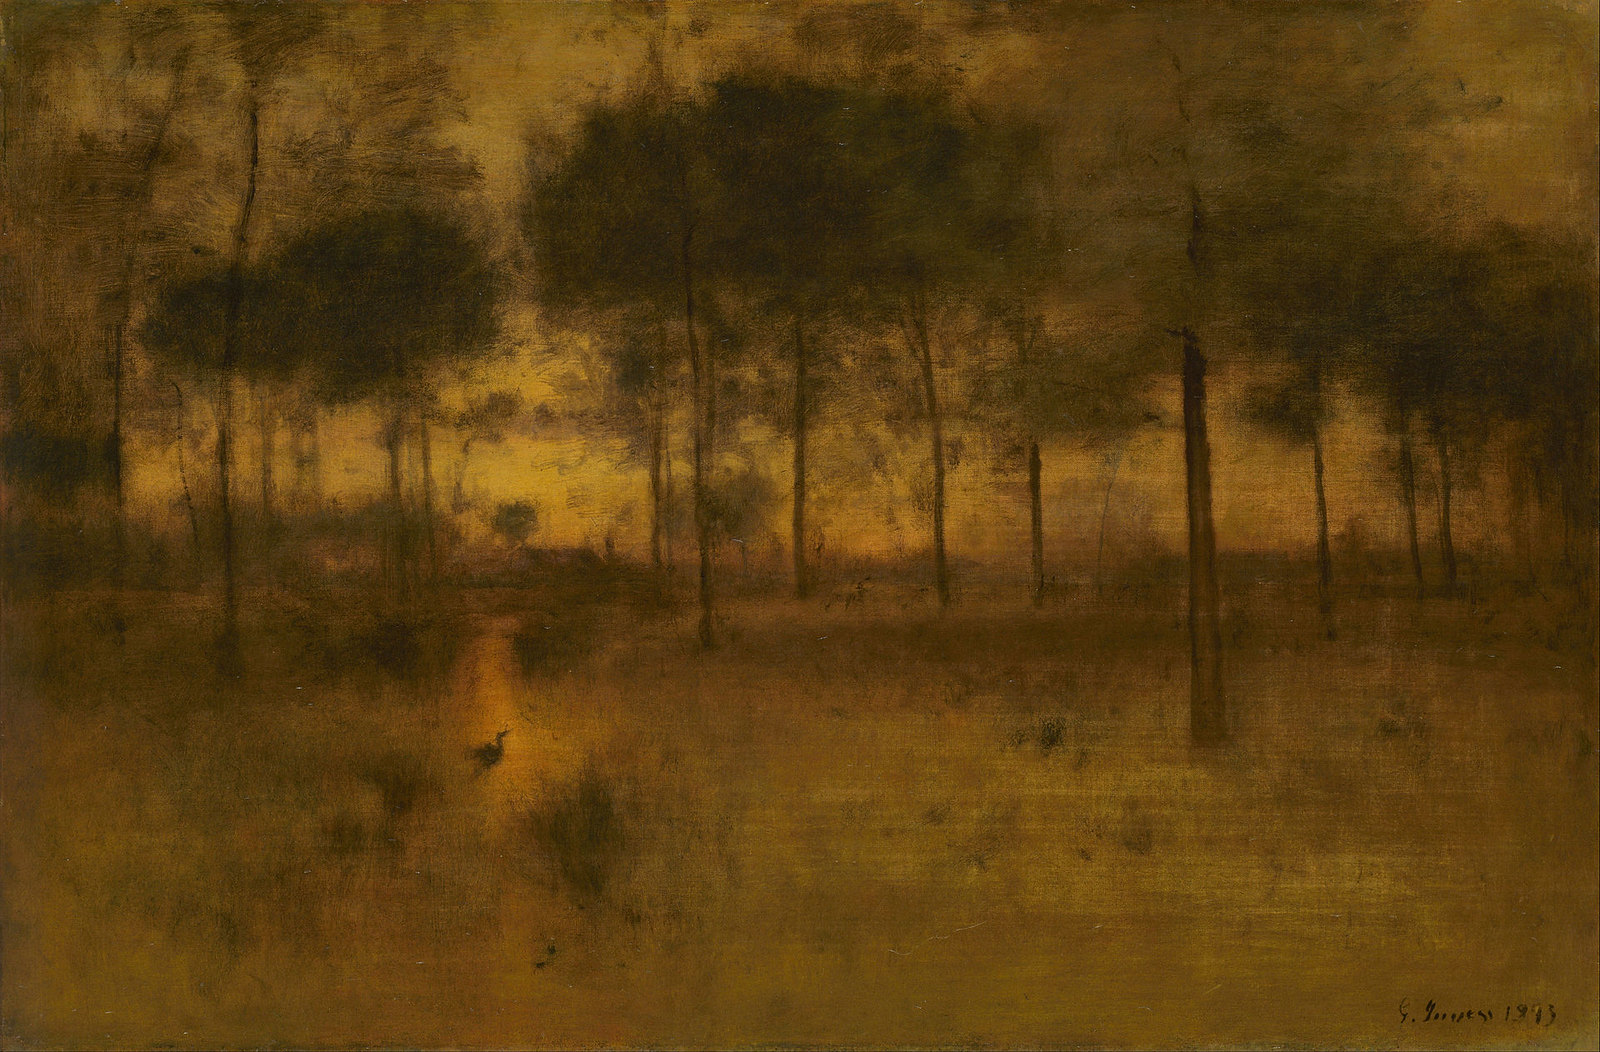 The Home of the Heron by George Inness, 1893